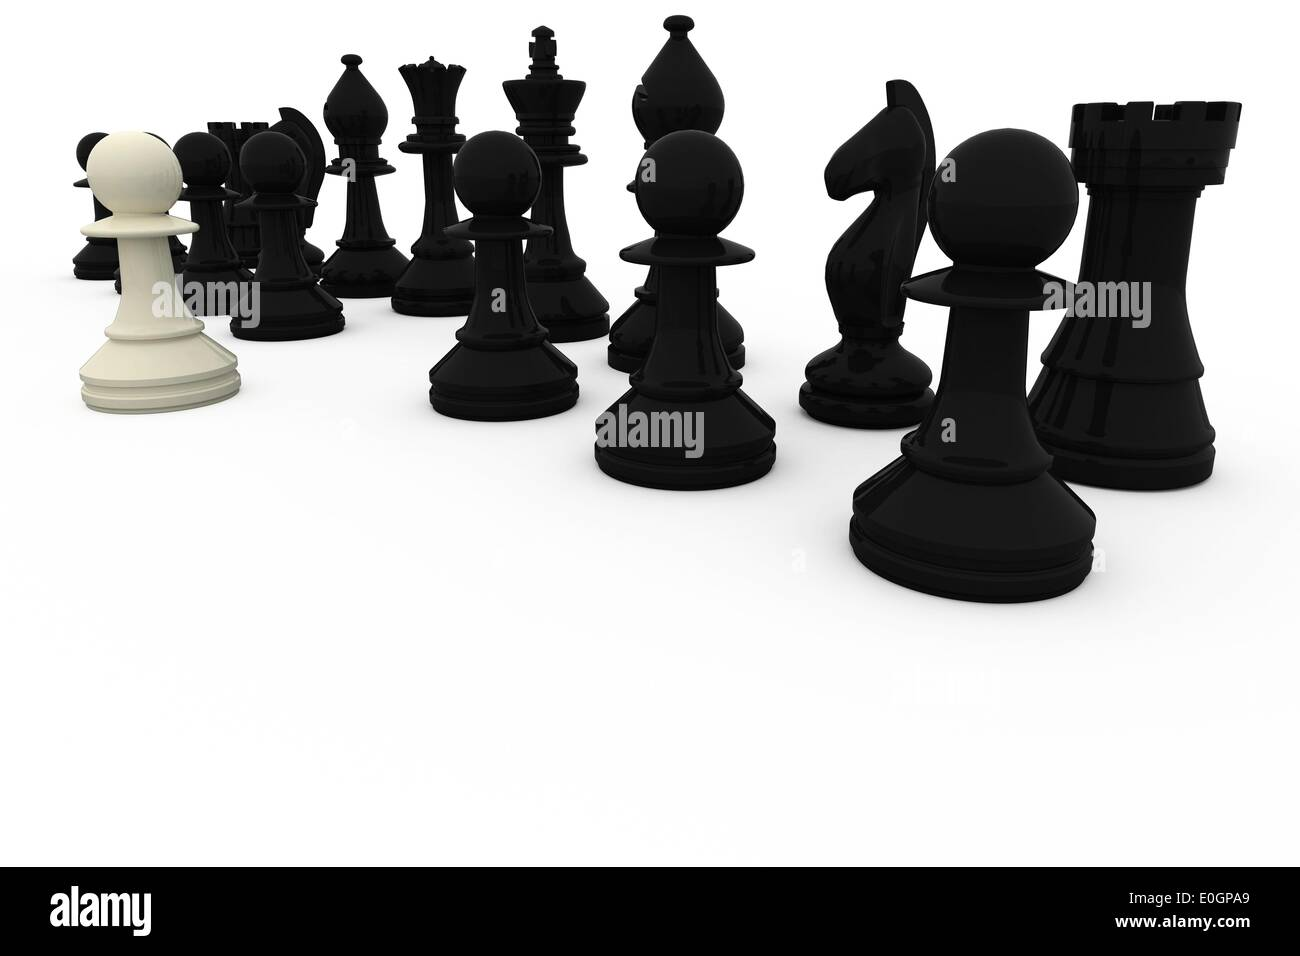 White pawn facing black opposition - Stock Image